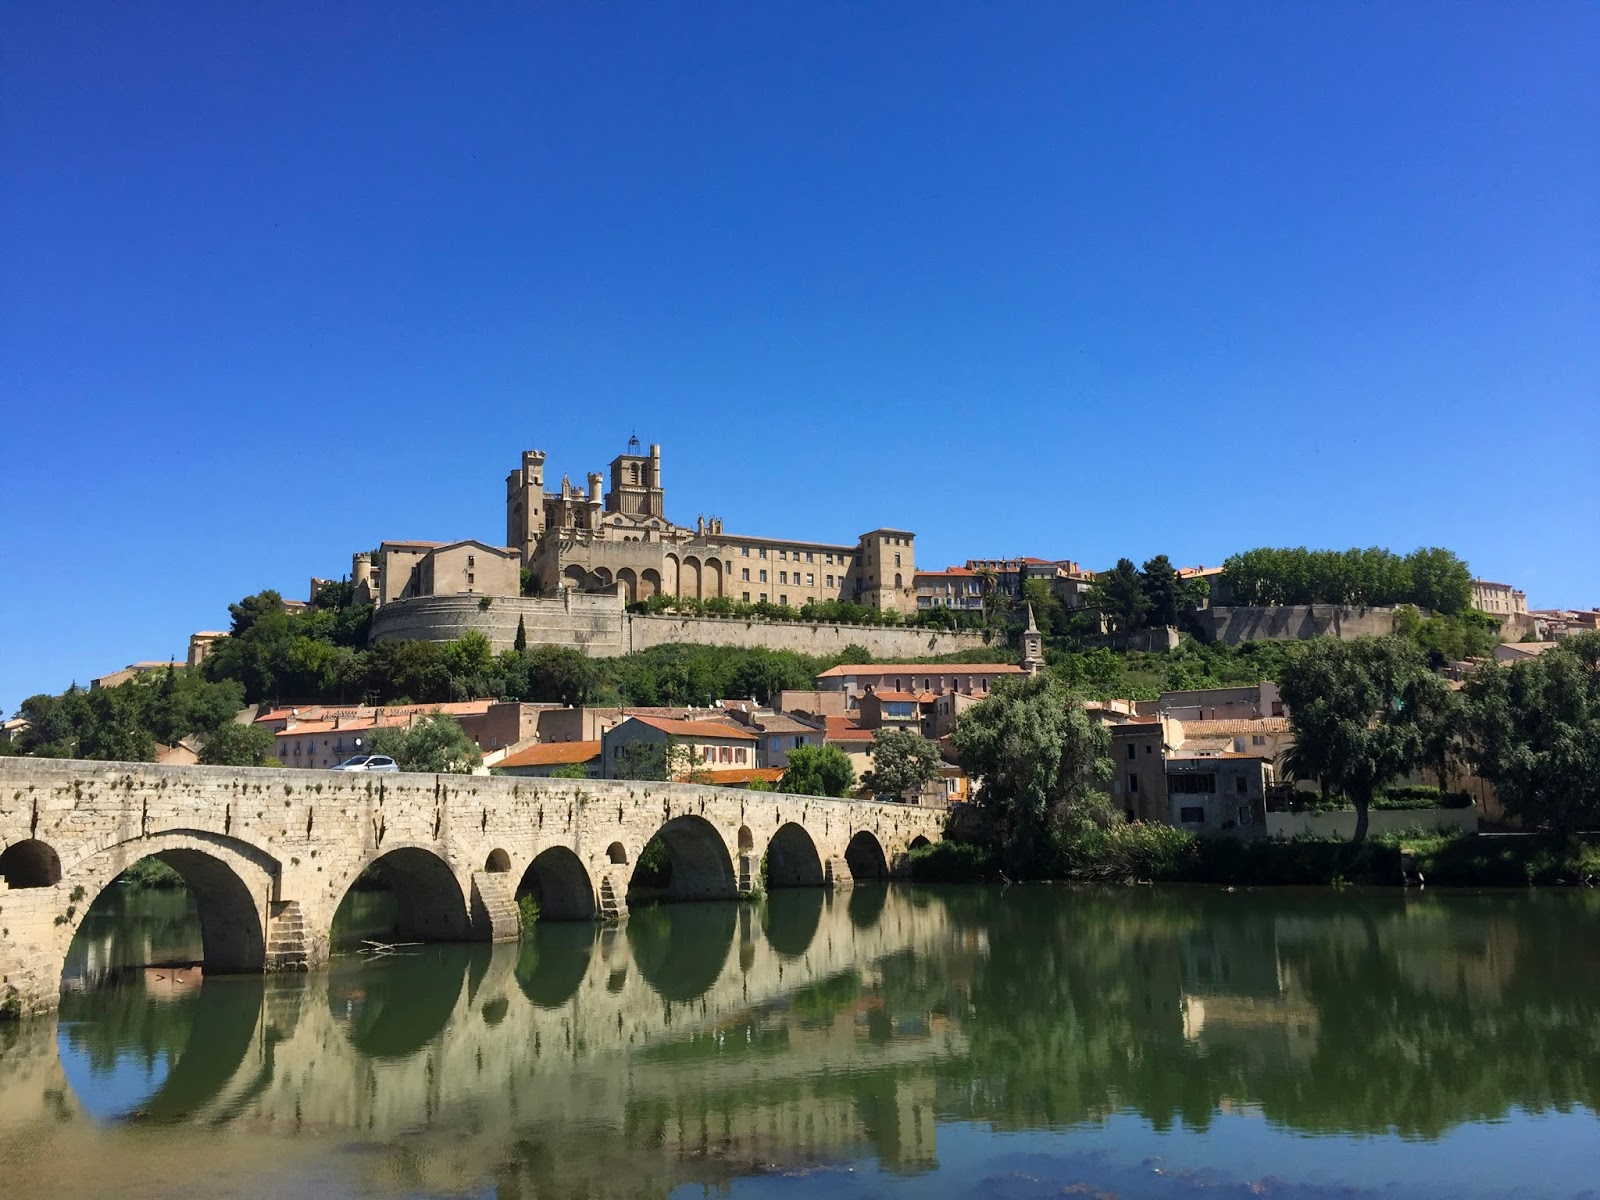 In And Out Beziers little girl, bigger world: béziers: the south of france's